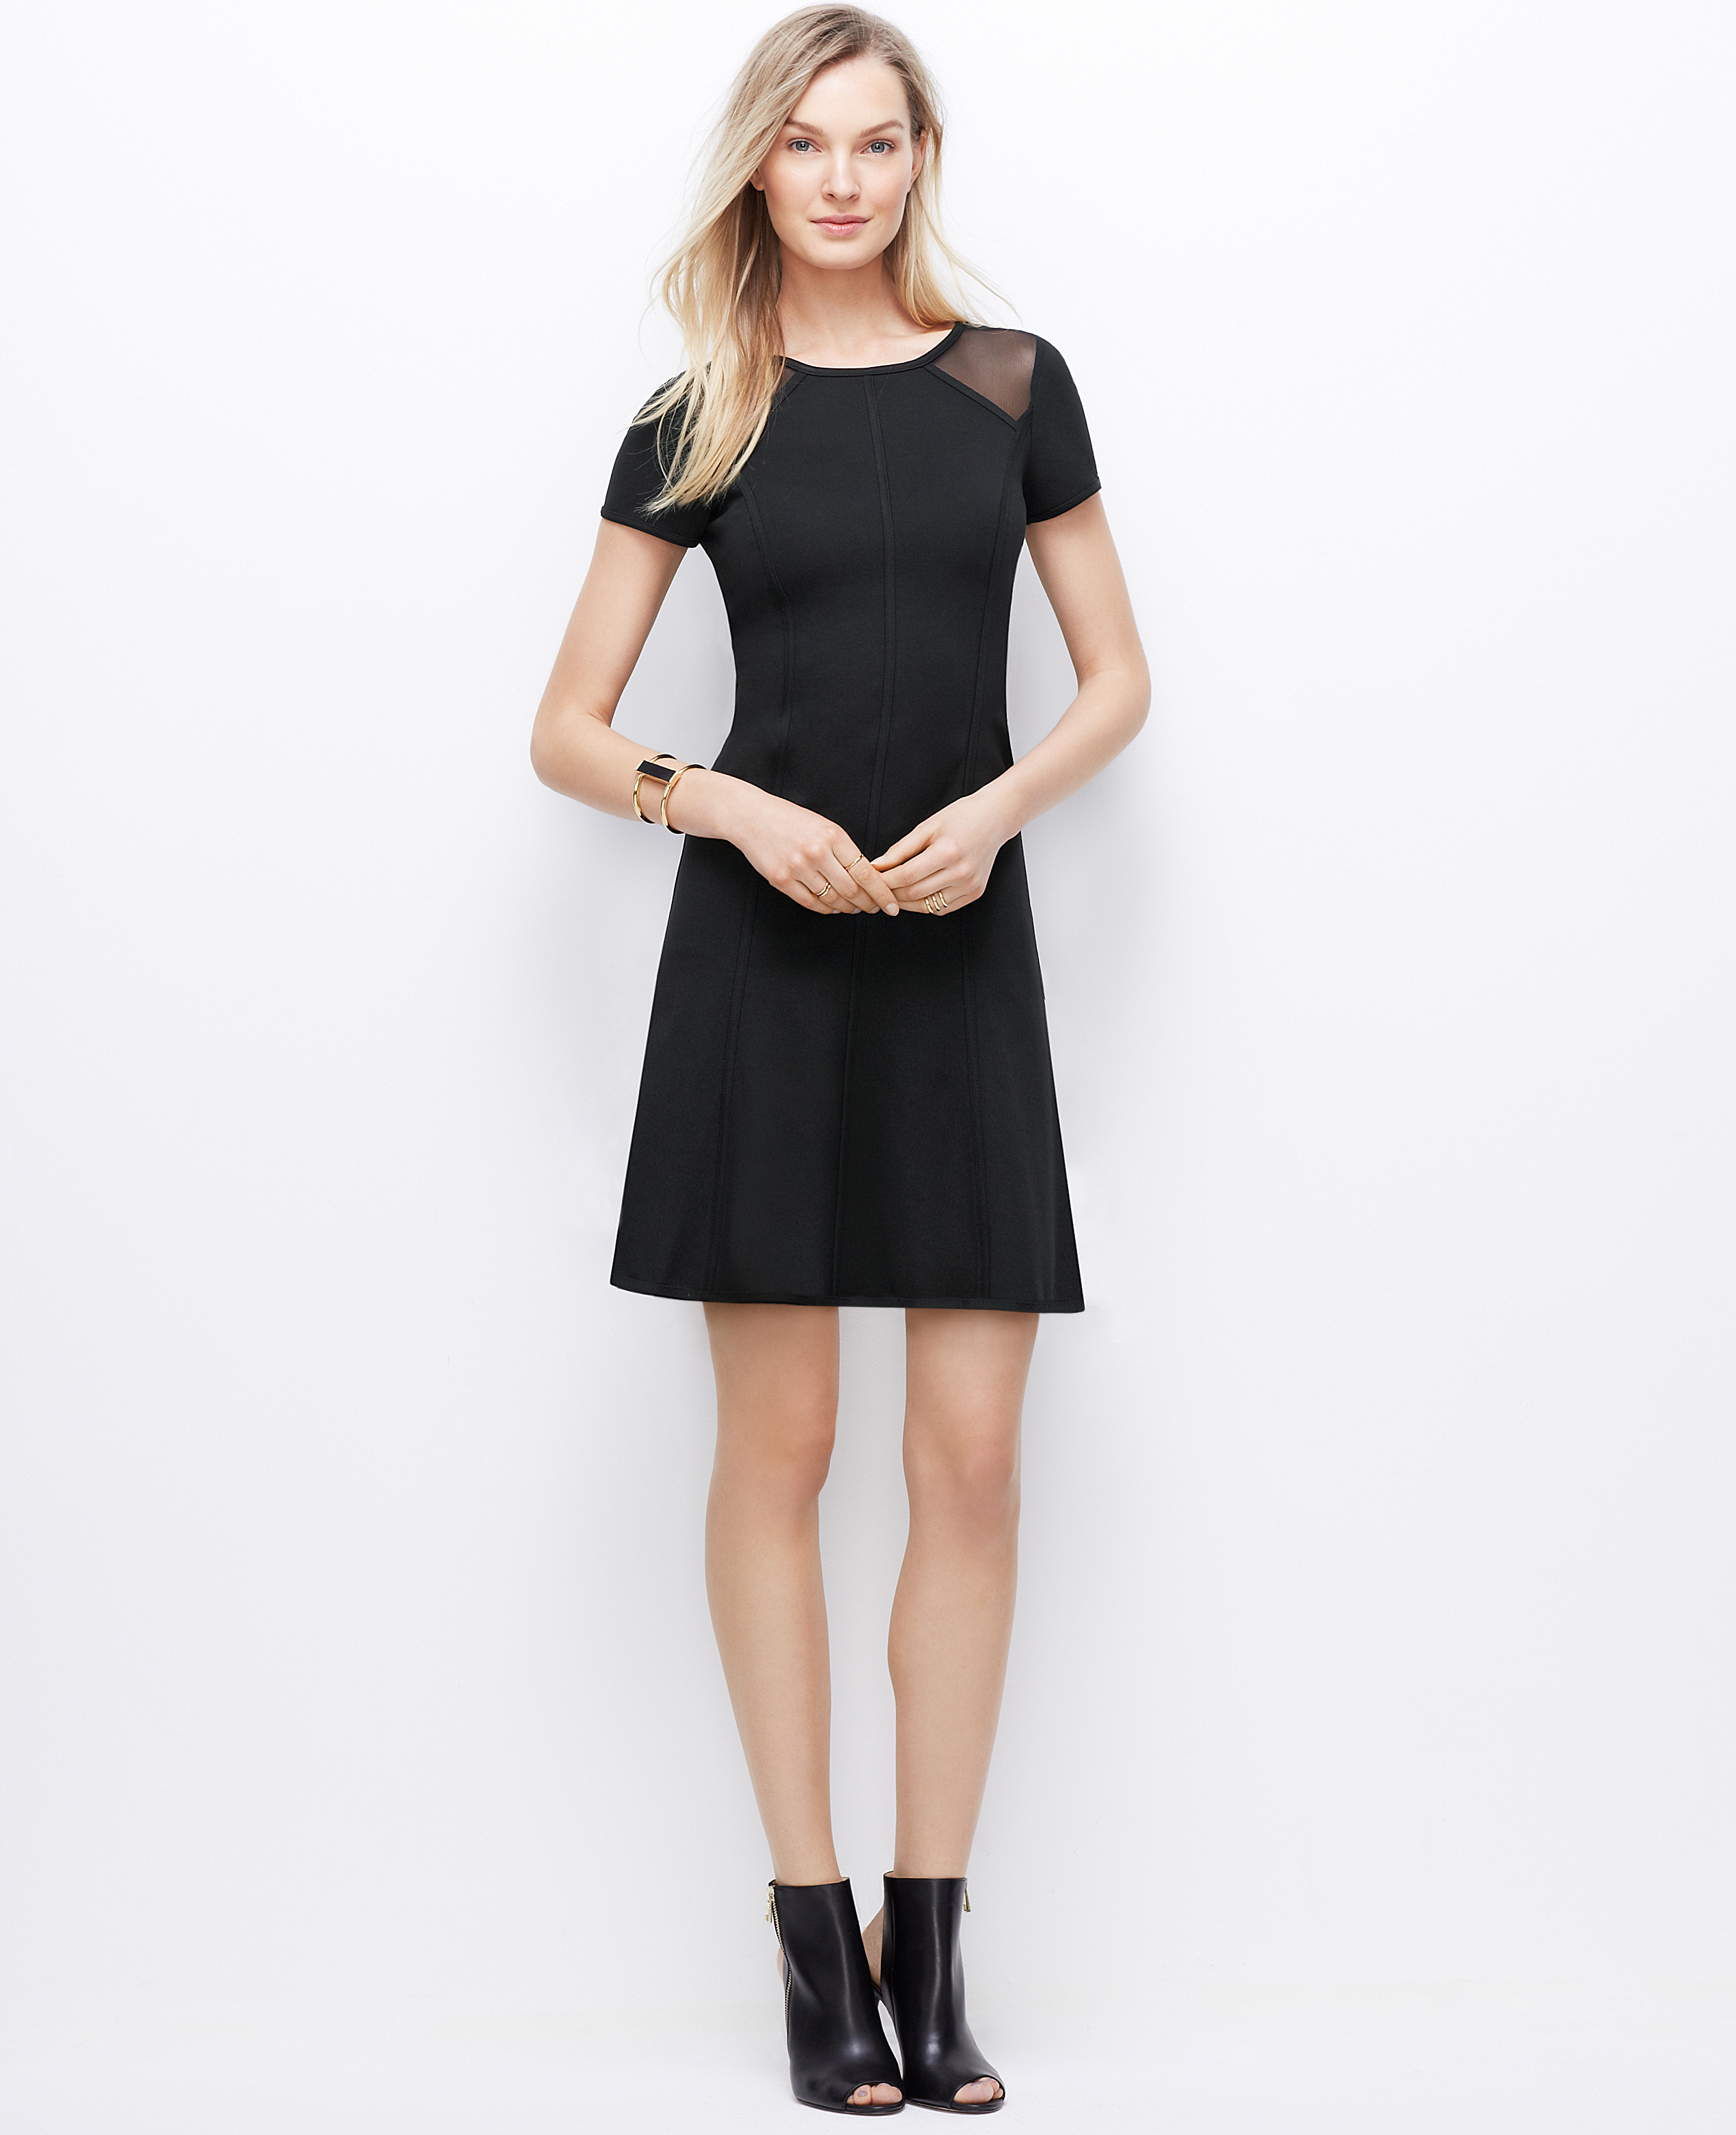 648a251d96 Lyst - Ann Taylor Sheer Panel Flare Dress in Black